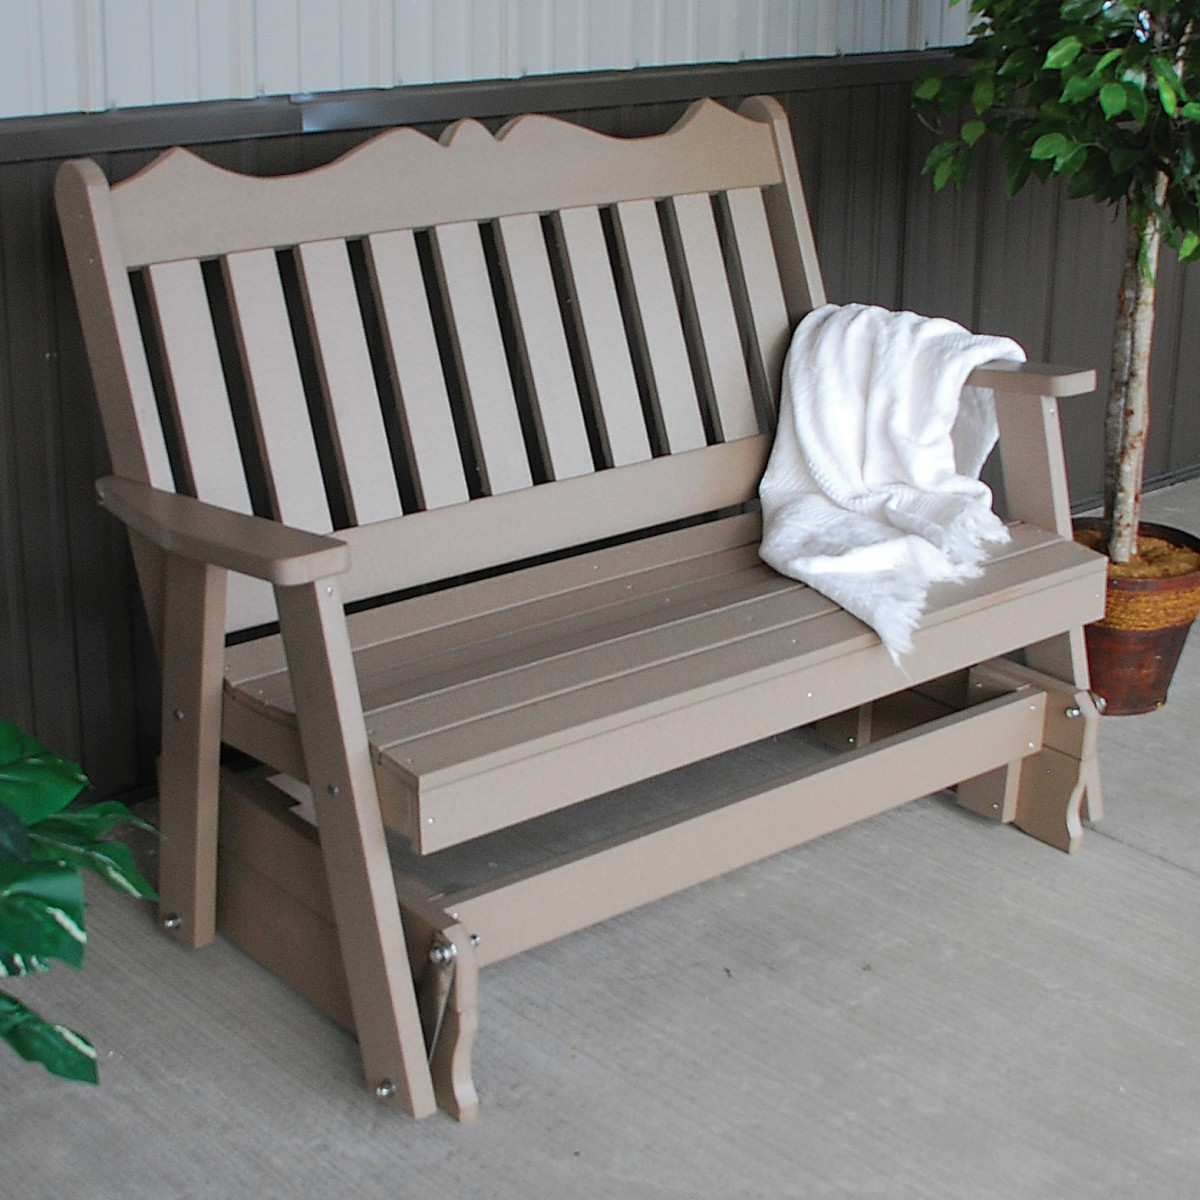 Amish outdoor glider bench lloyd flanders 001 922 lounge crofton collection rocke outdoor - Luxcraft fine outdoor furniture ...